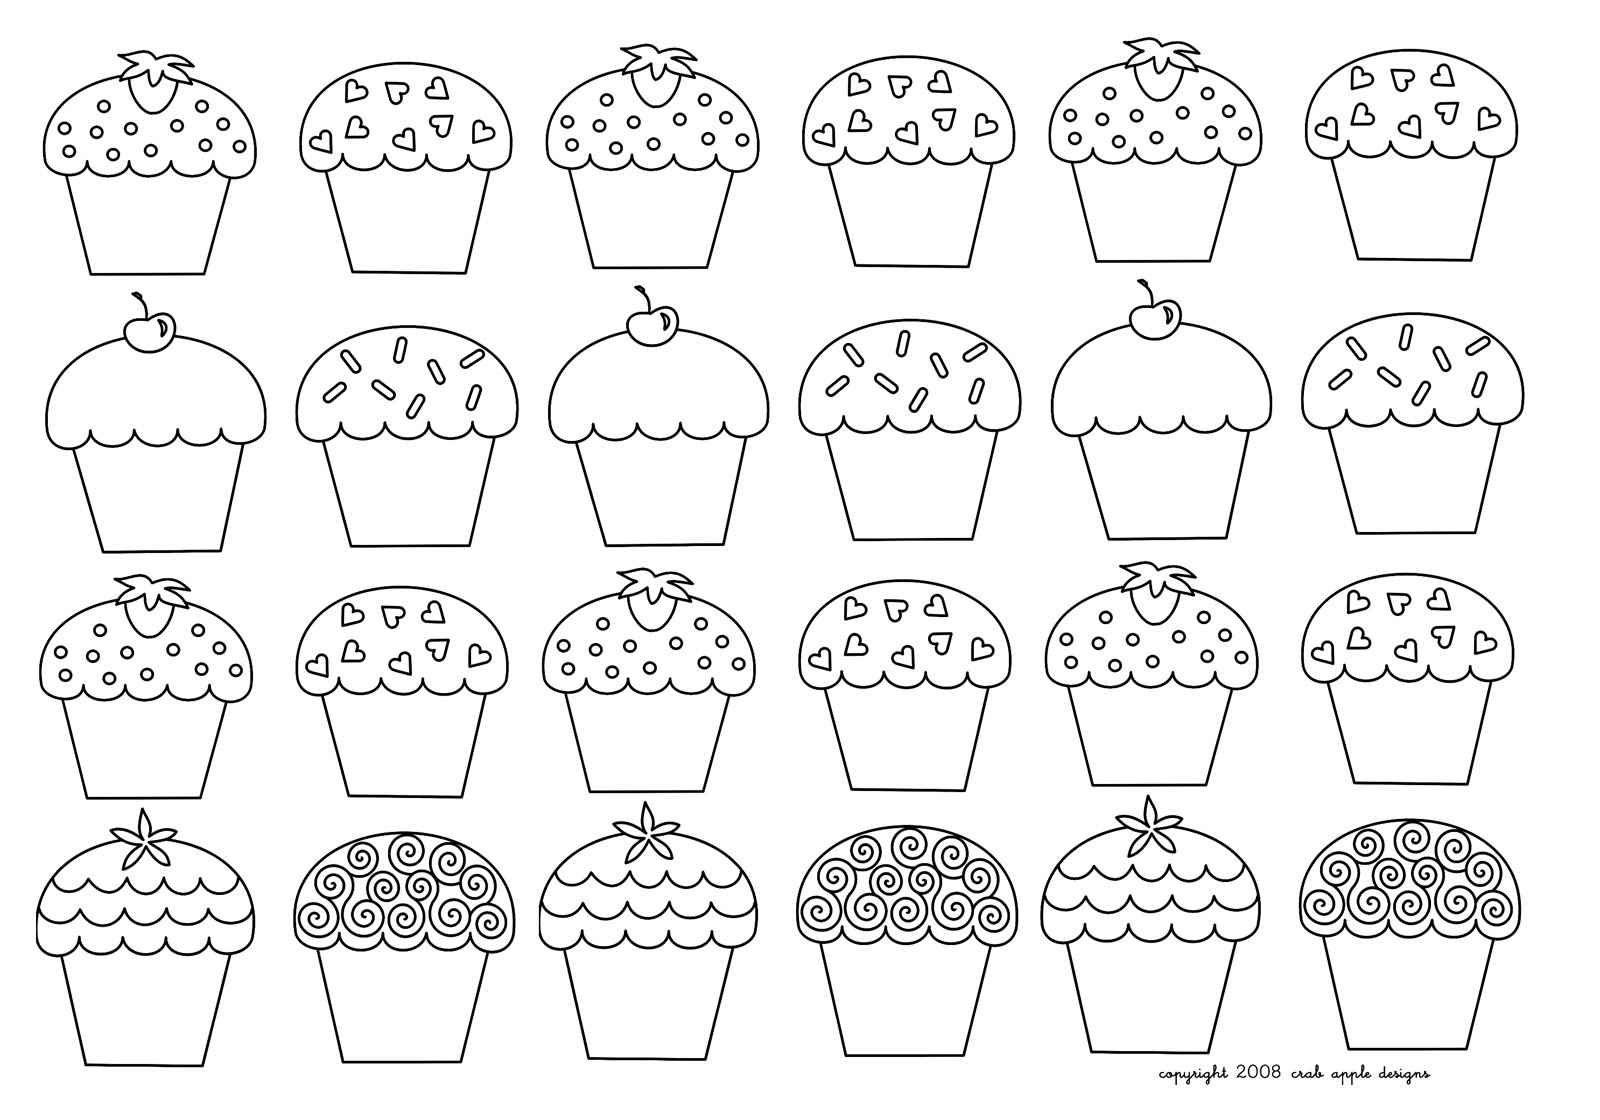 Cup Cakes - Coloring Pages For Adults : Coloring-Mosaique serapportantà Coloriage De Cupcake